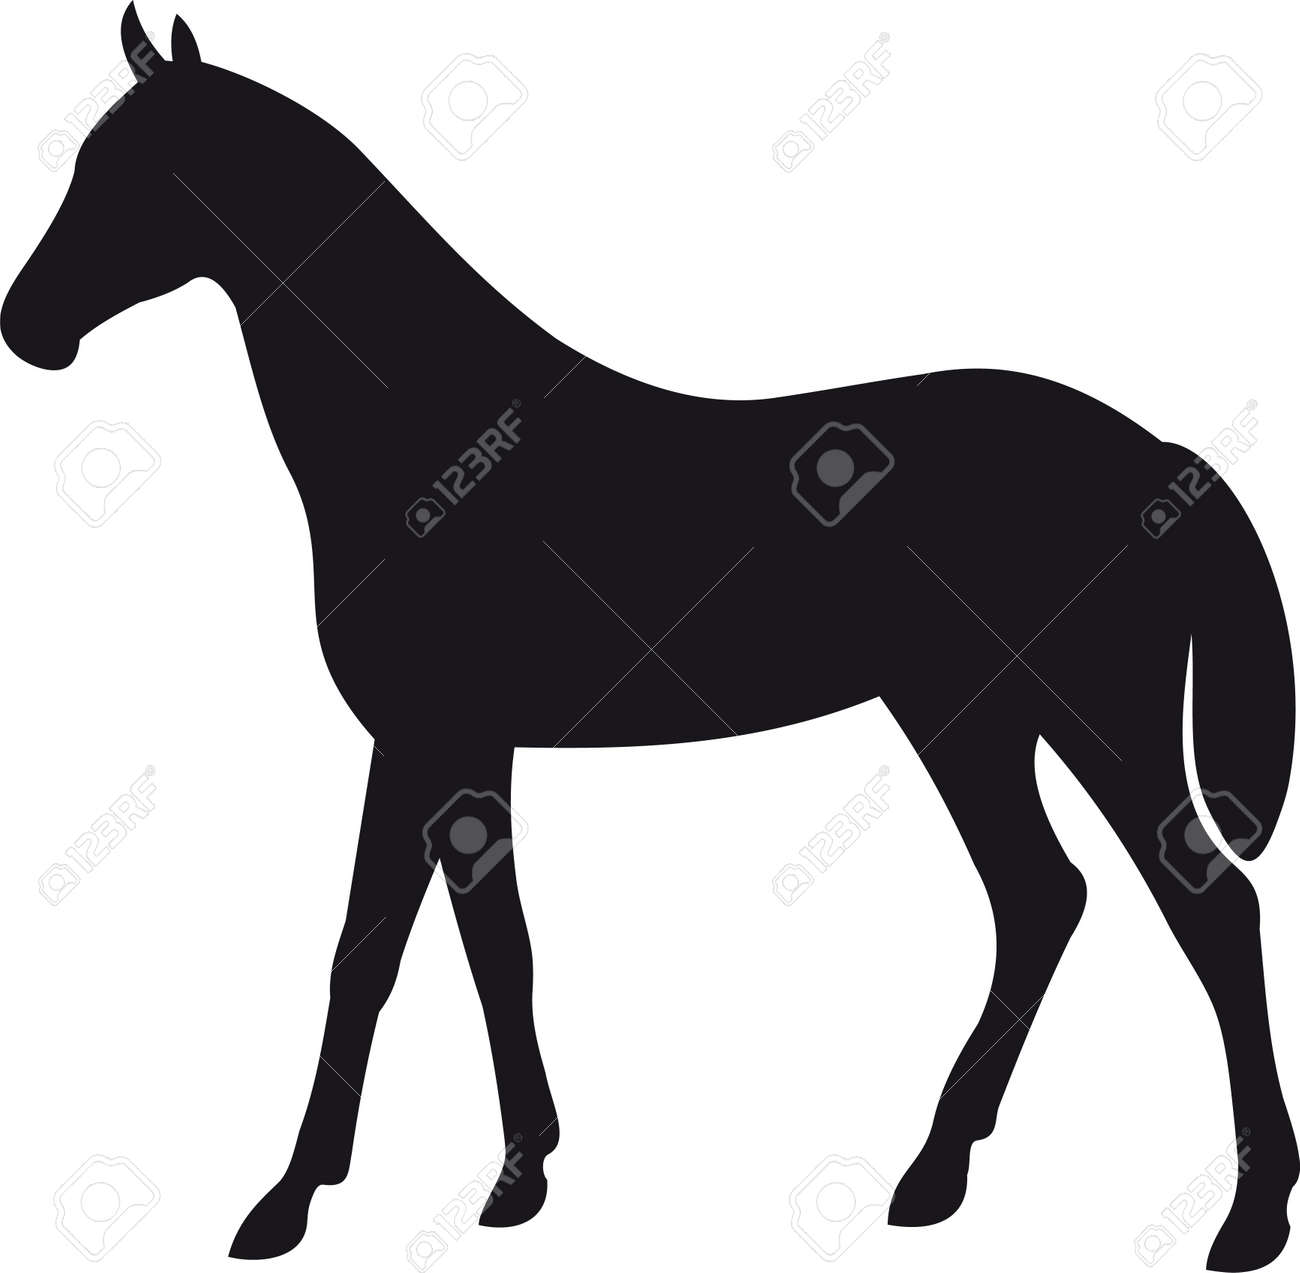 horse silhouette vector royalty free cliparts vectors and stock rh 123rf com running horse silhouette vector rocking horse silhouette vector